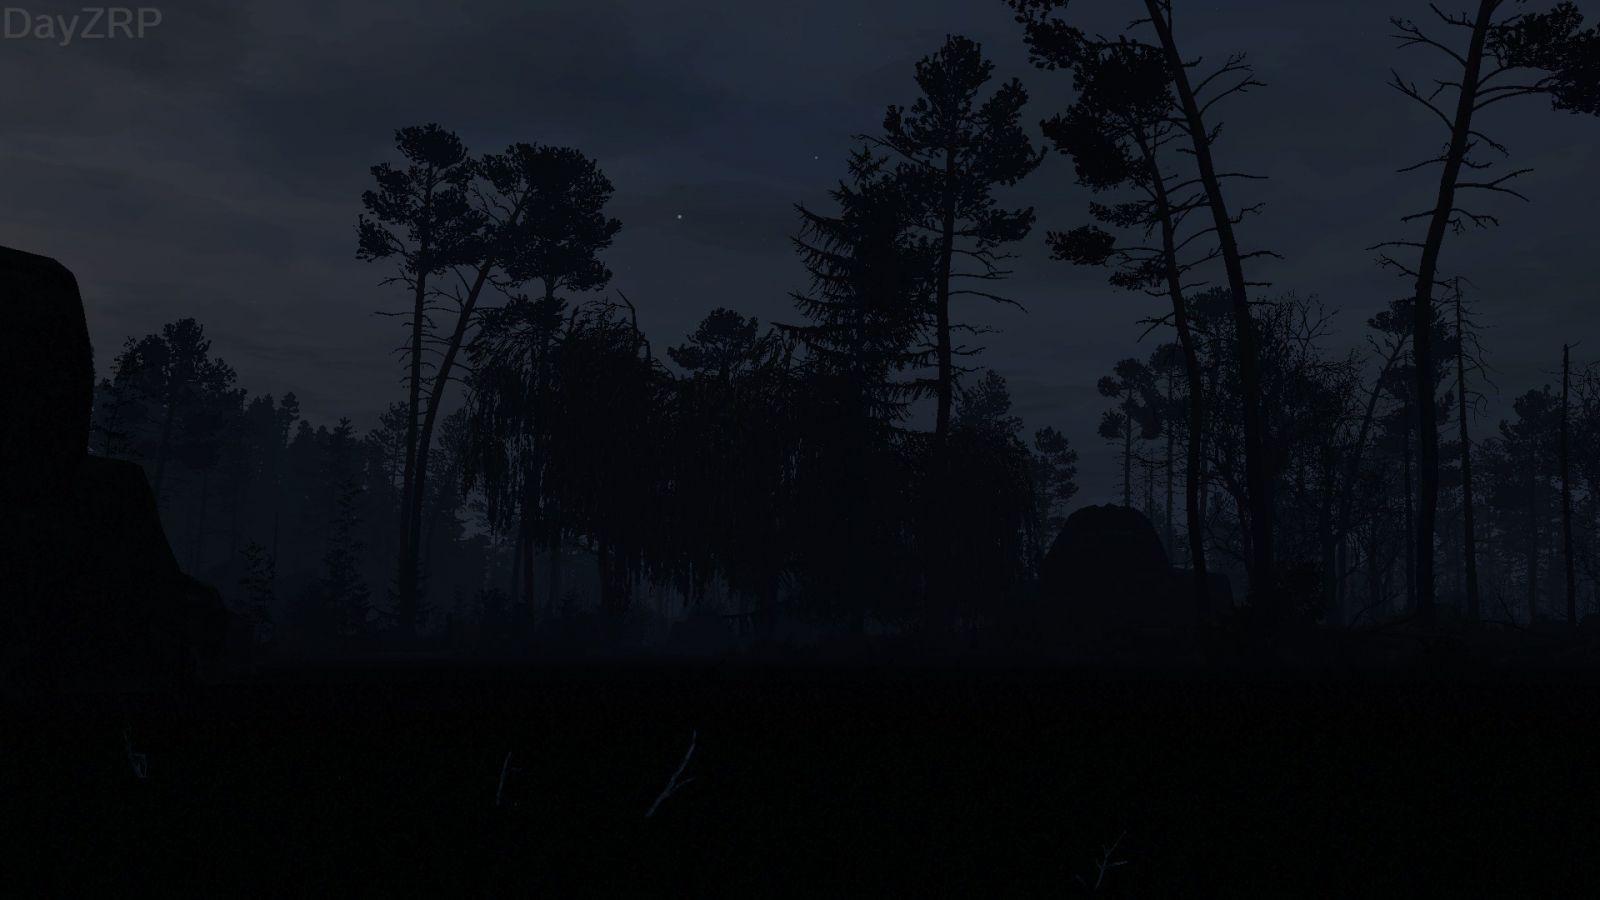 A night in the swamp